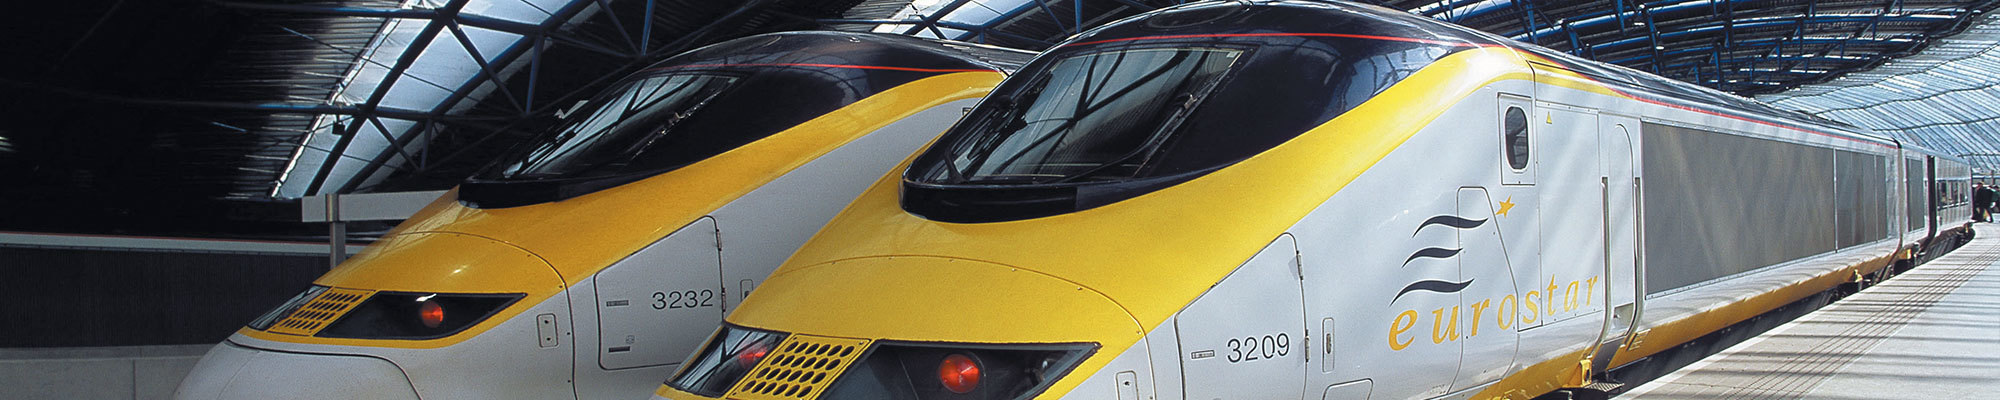 two yellow and white eurostar trains